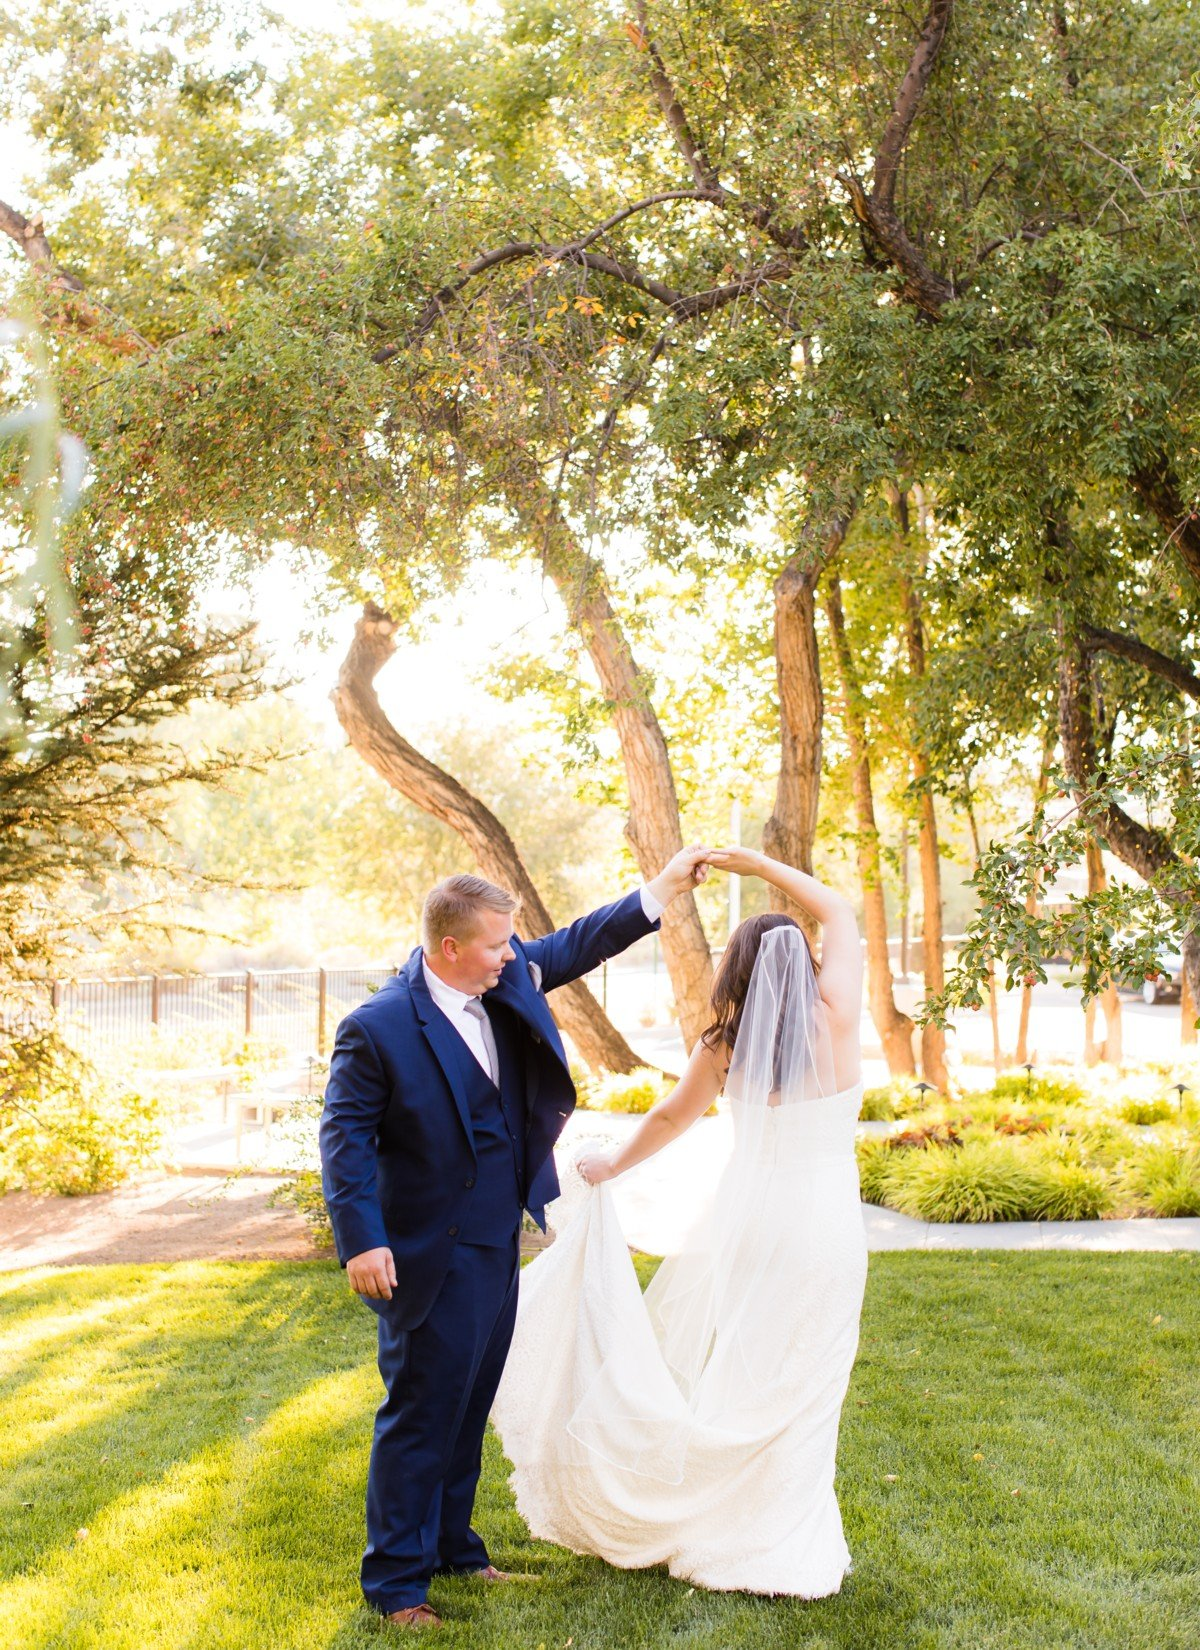 B&B Photography Lake Tahoe wedding - private dance in the woods